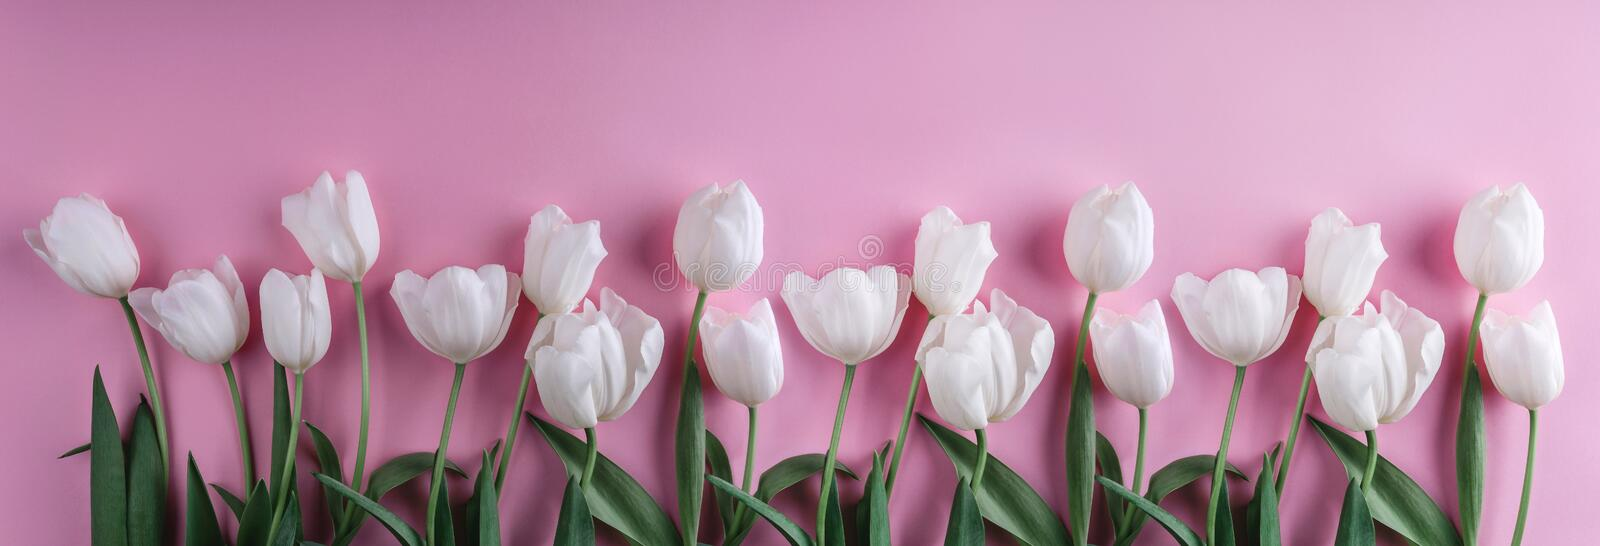 White tulips flowers over light pink background. Greeting card or wedding invitation stock images